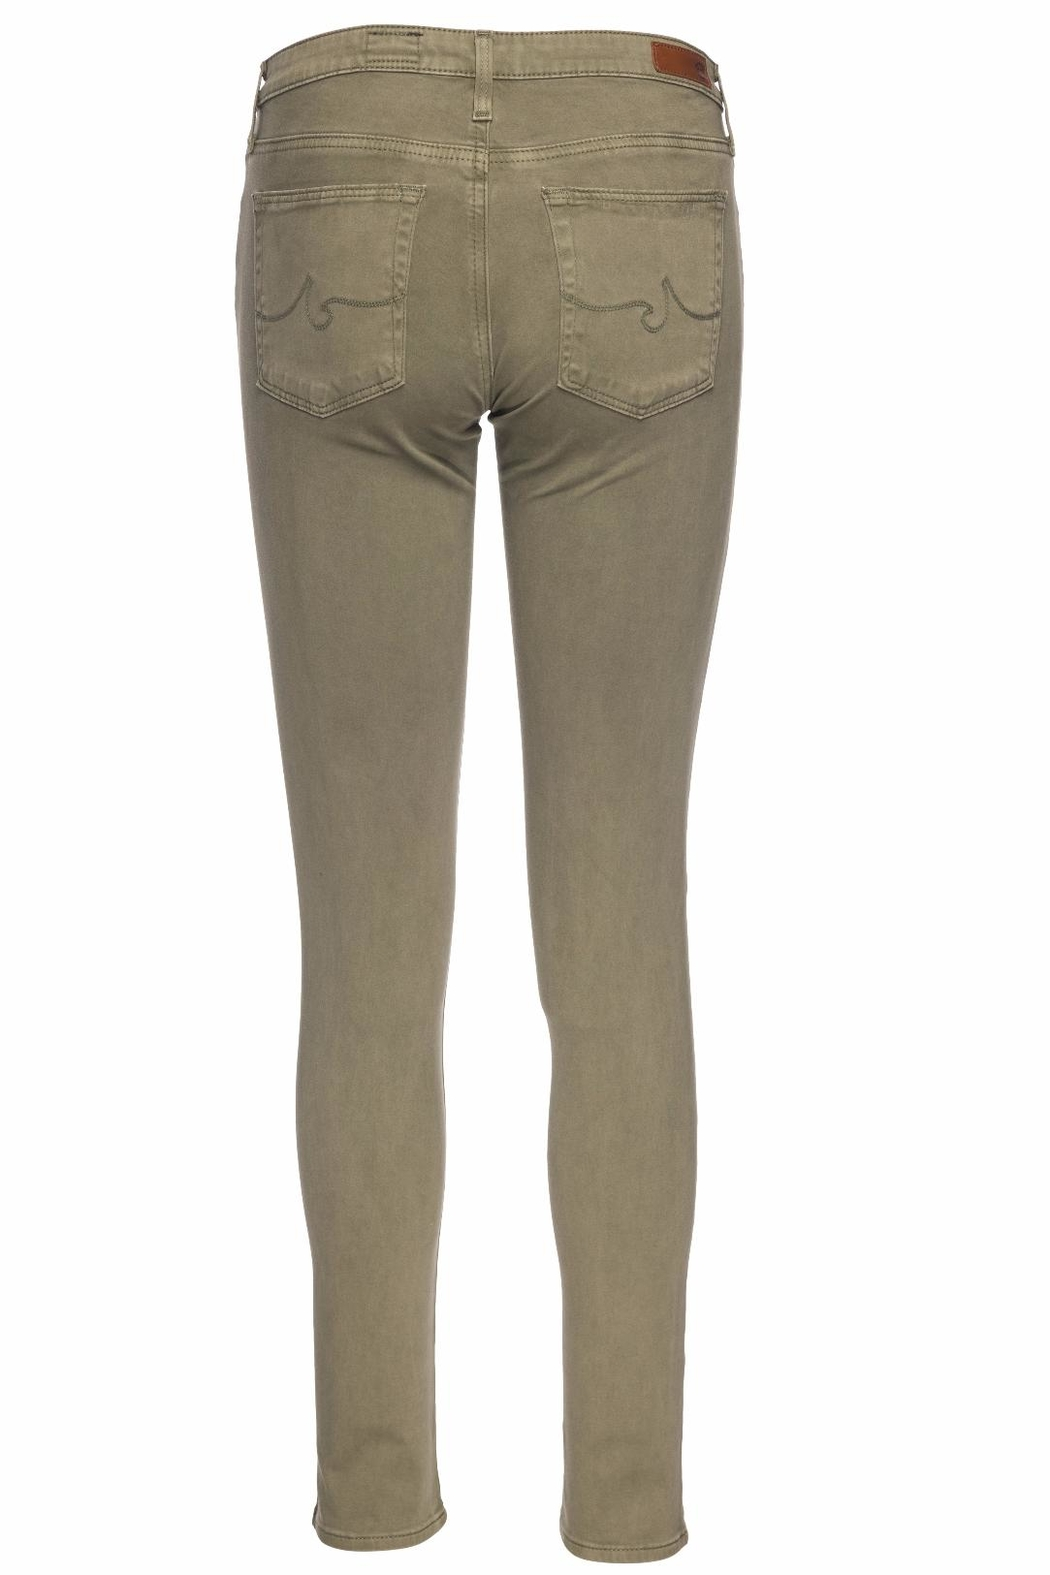 AG Adriano Goldschmied Prima Ankle Jean - Front Full Image